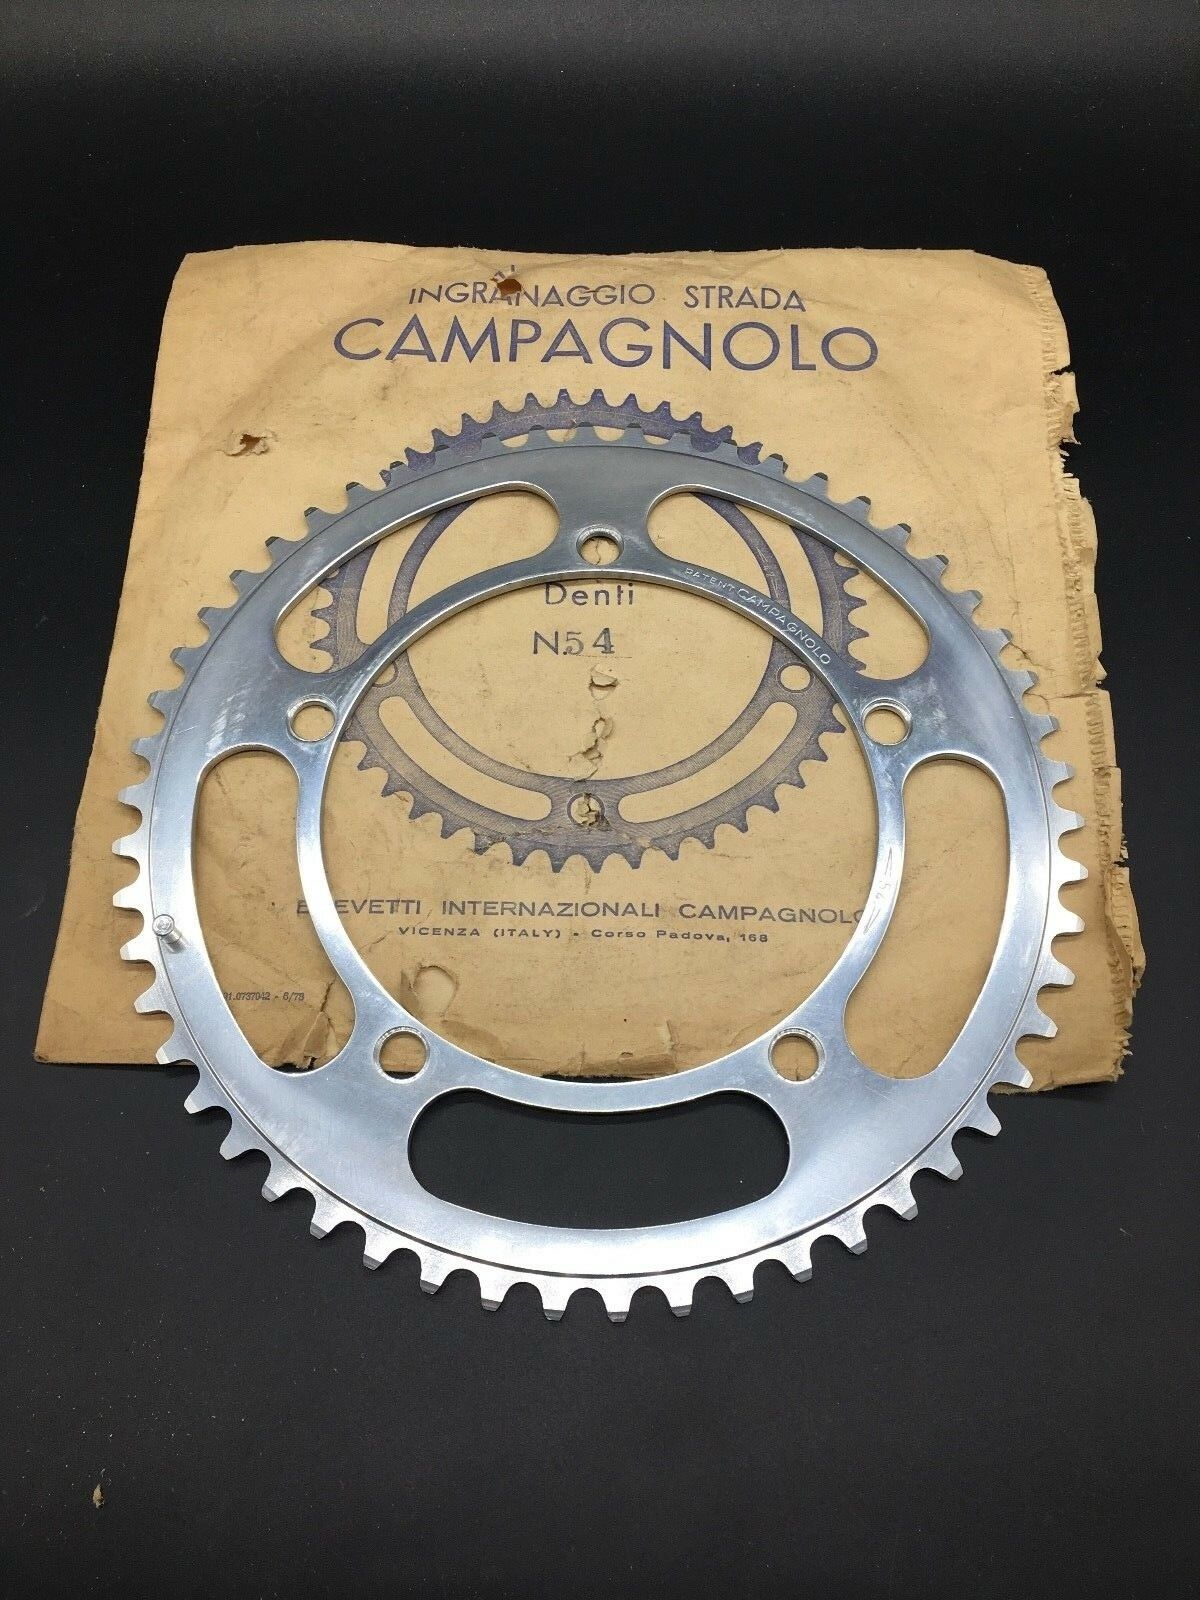 VINTAGE CAMPAGNOLO RECORD CHAINRING 54T 1 2  X 1 32  BCD 144 NIB NOS SUPER